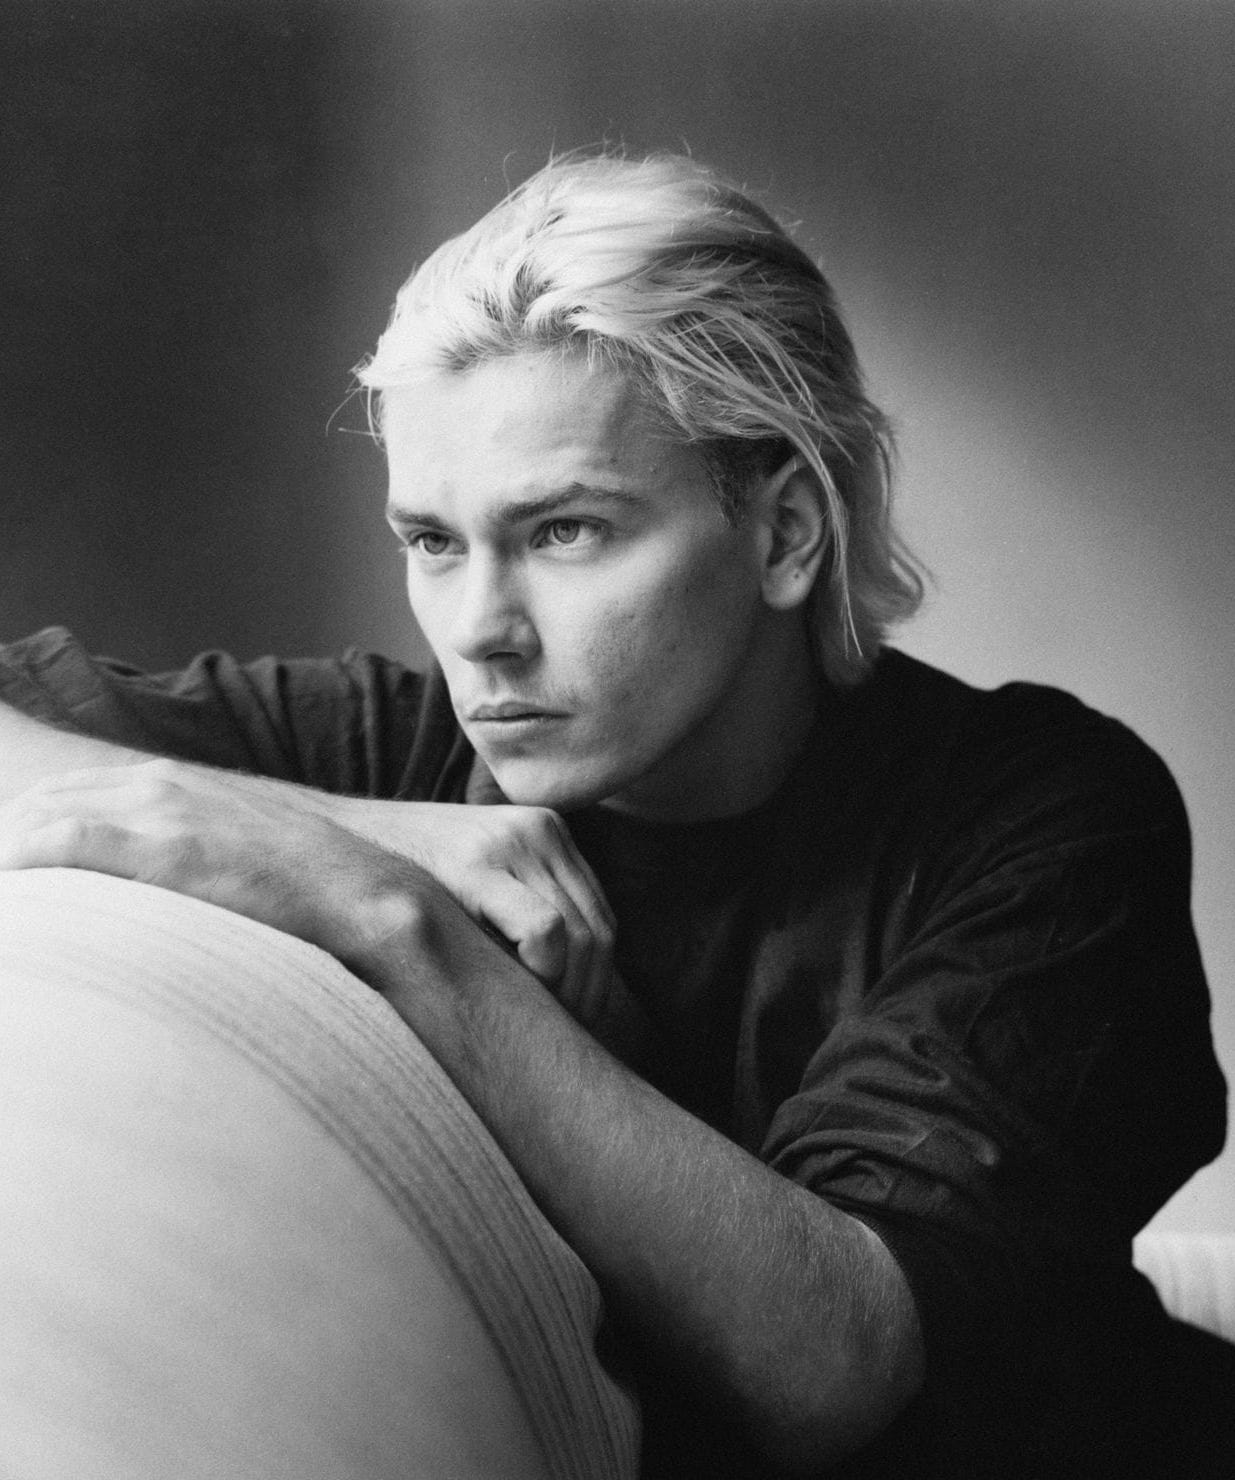 River Phoenix modelling for a black and white photoshoot